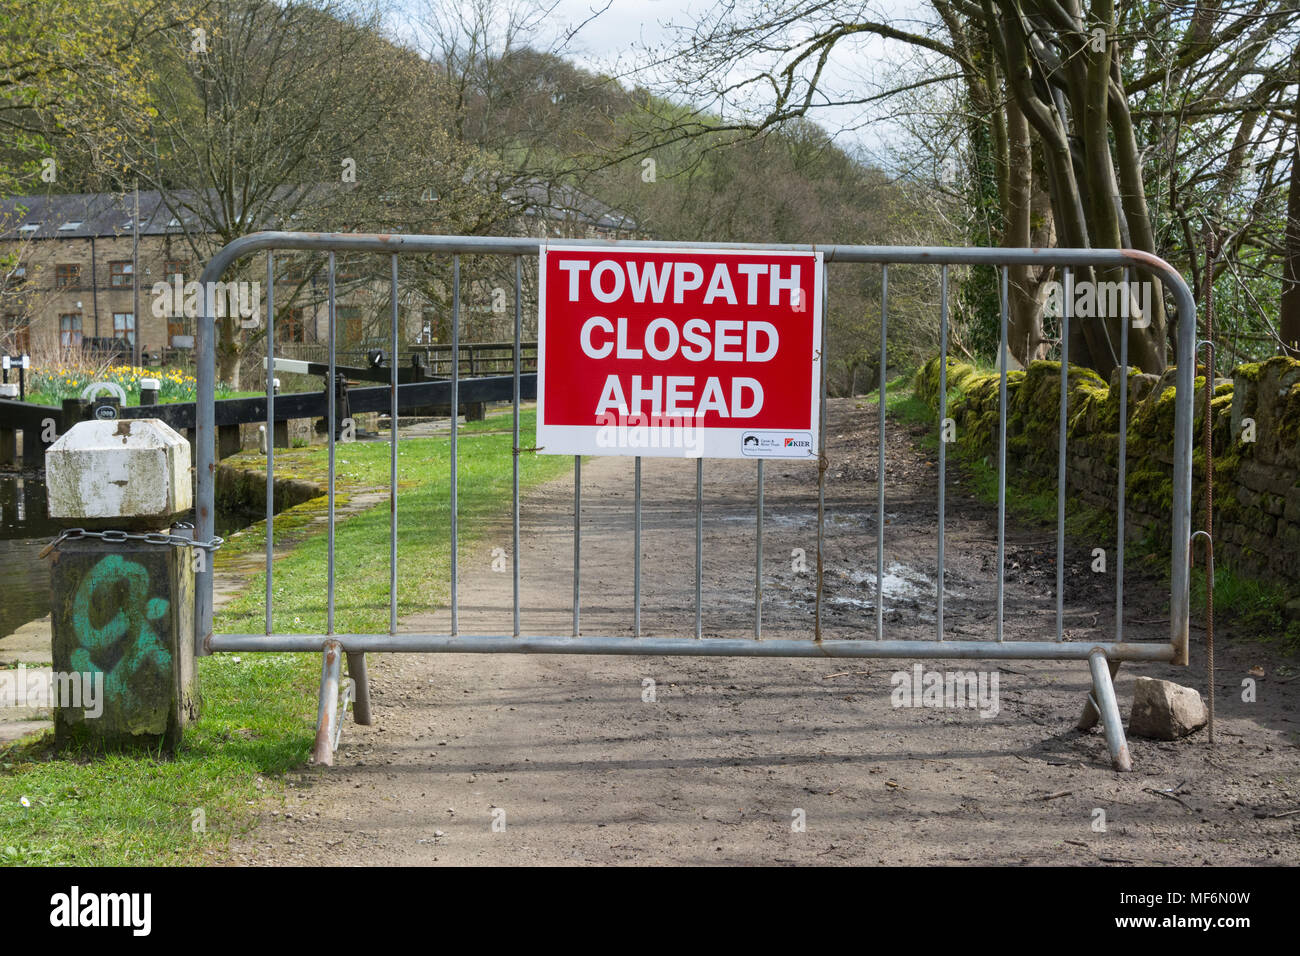 A sign on a barrier placed across the towpath of the Rochdale Canal at Hebden Bridge says 'Towpath Closed Ahead' as work is done to mend the towpath. - Stock Image